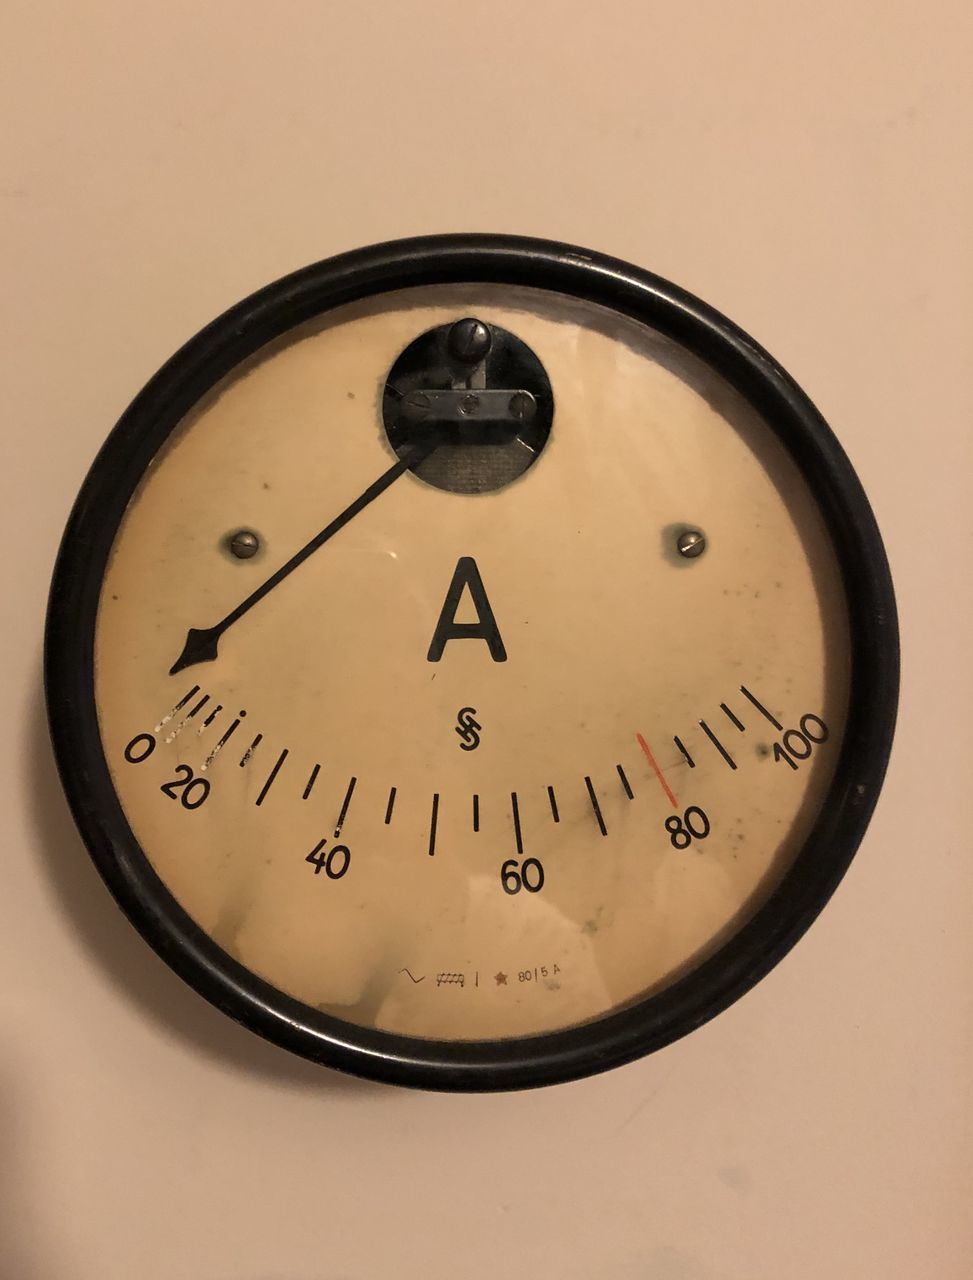 number, circle, geometric shape, close-up, time, clock, no people, shape, indoors, accuracy, instrument of time, wall - building feature, studio shot, man made, man made object, minute hand, clock face, technology, wall clock